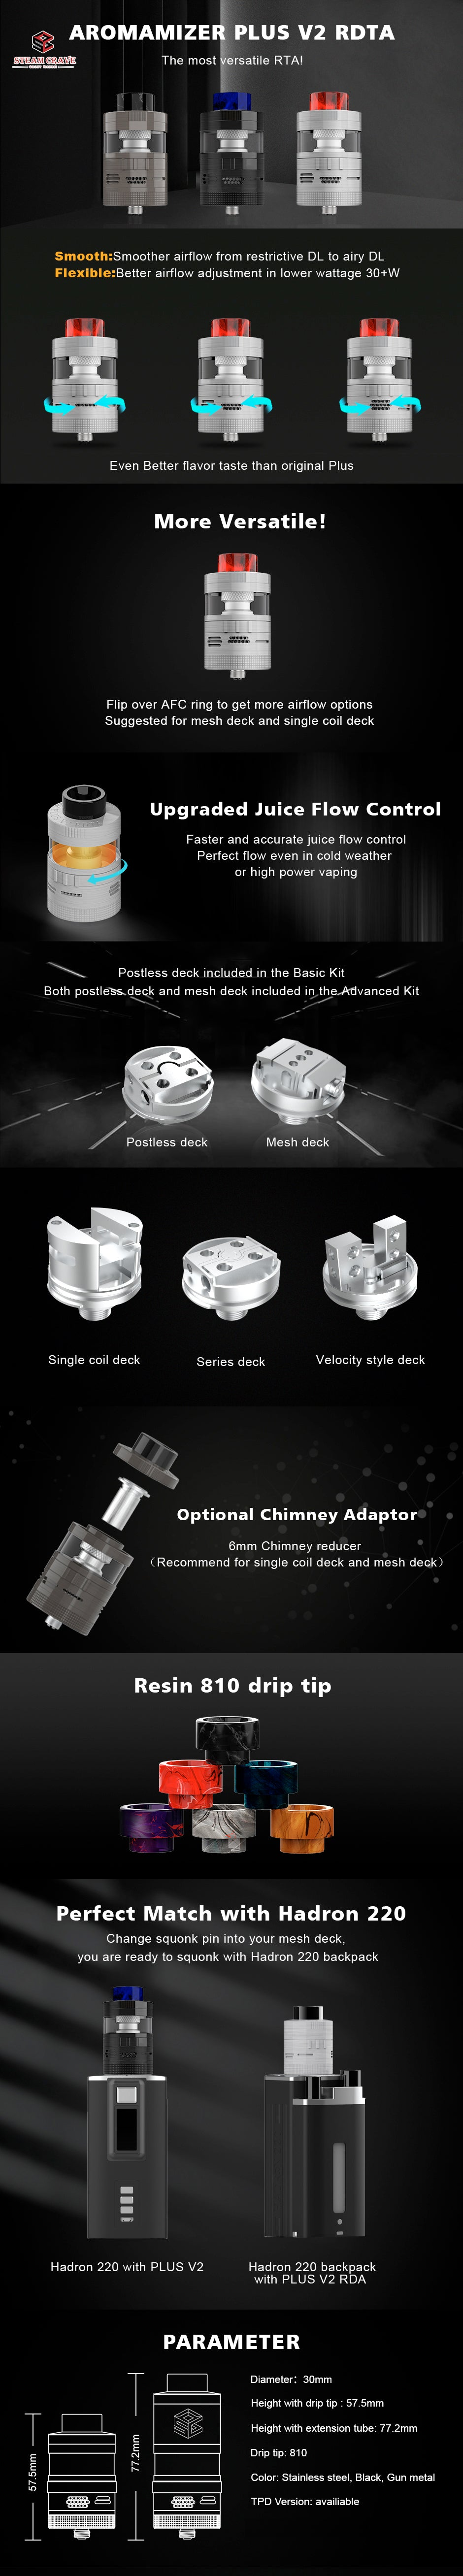 Aromamizer Plus V2 RDTA by Steam Crave Advance Edition